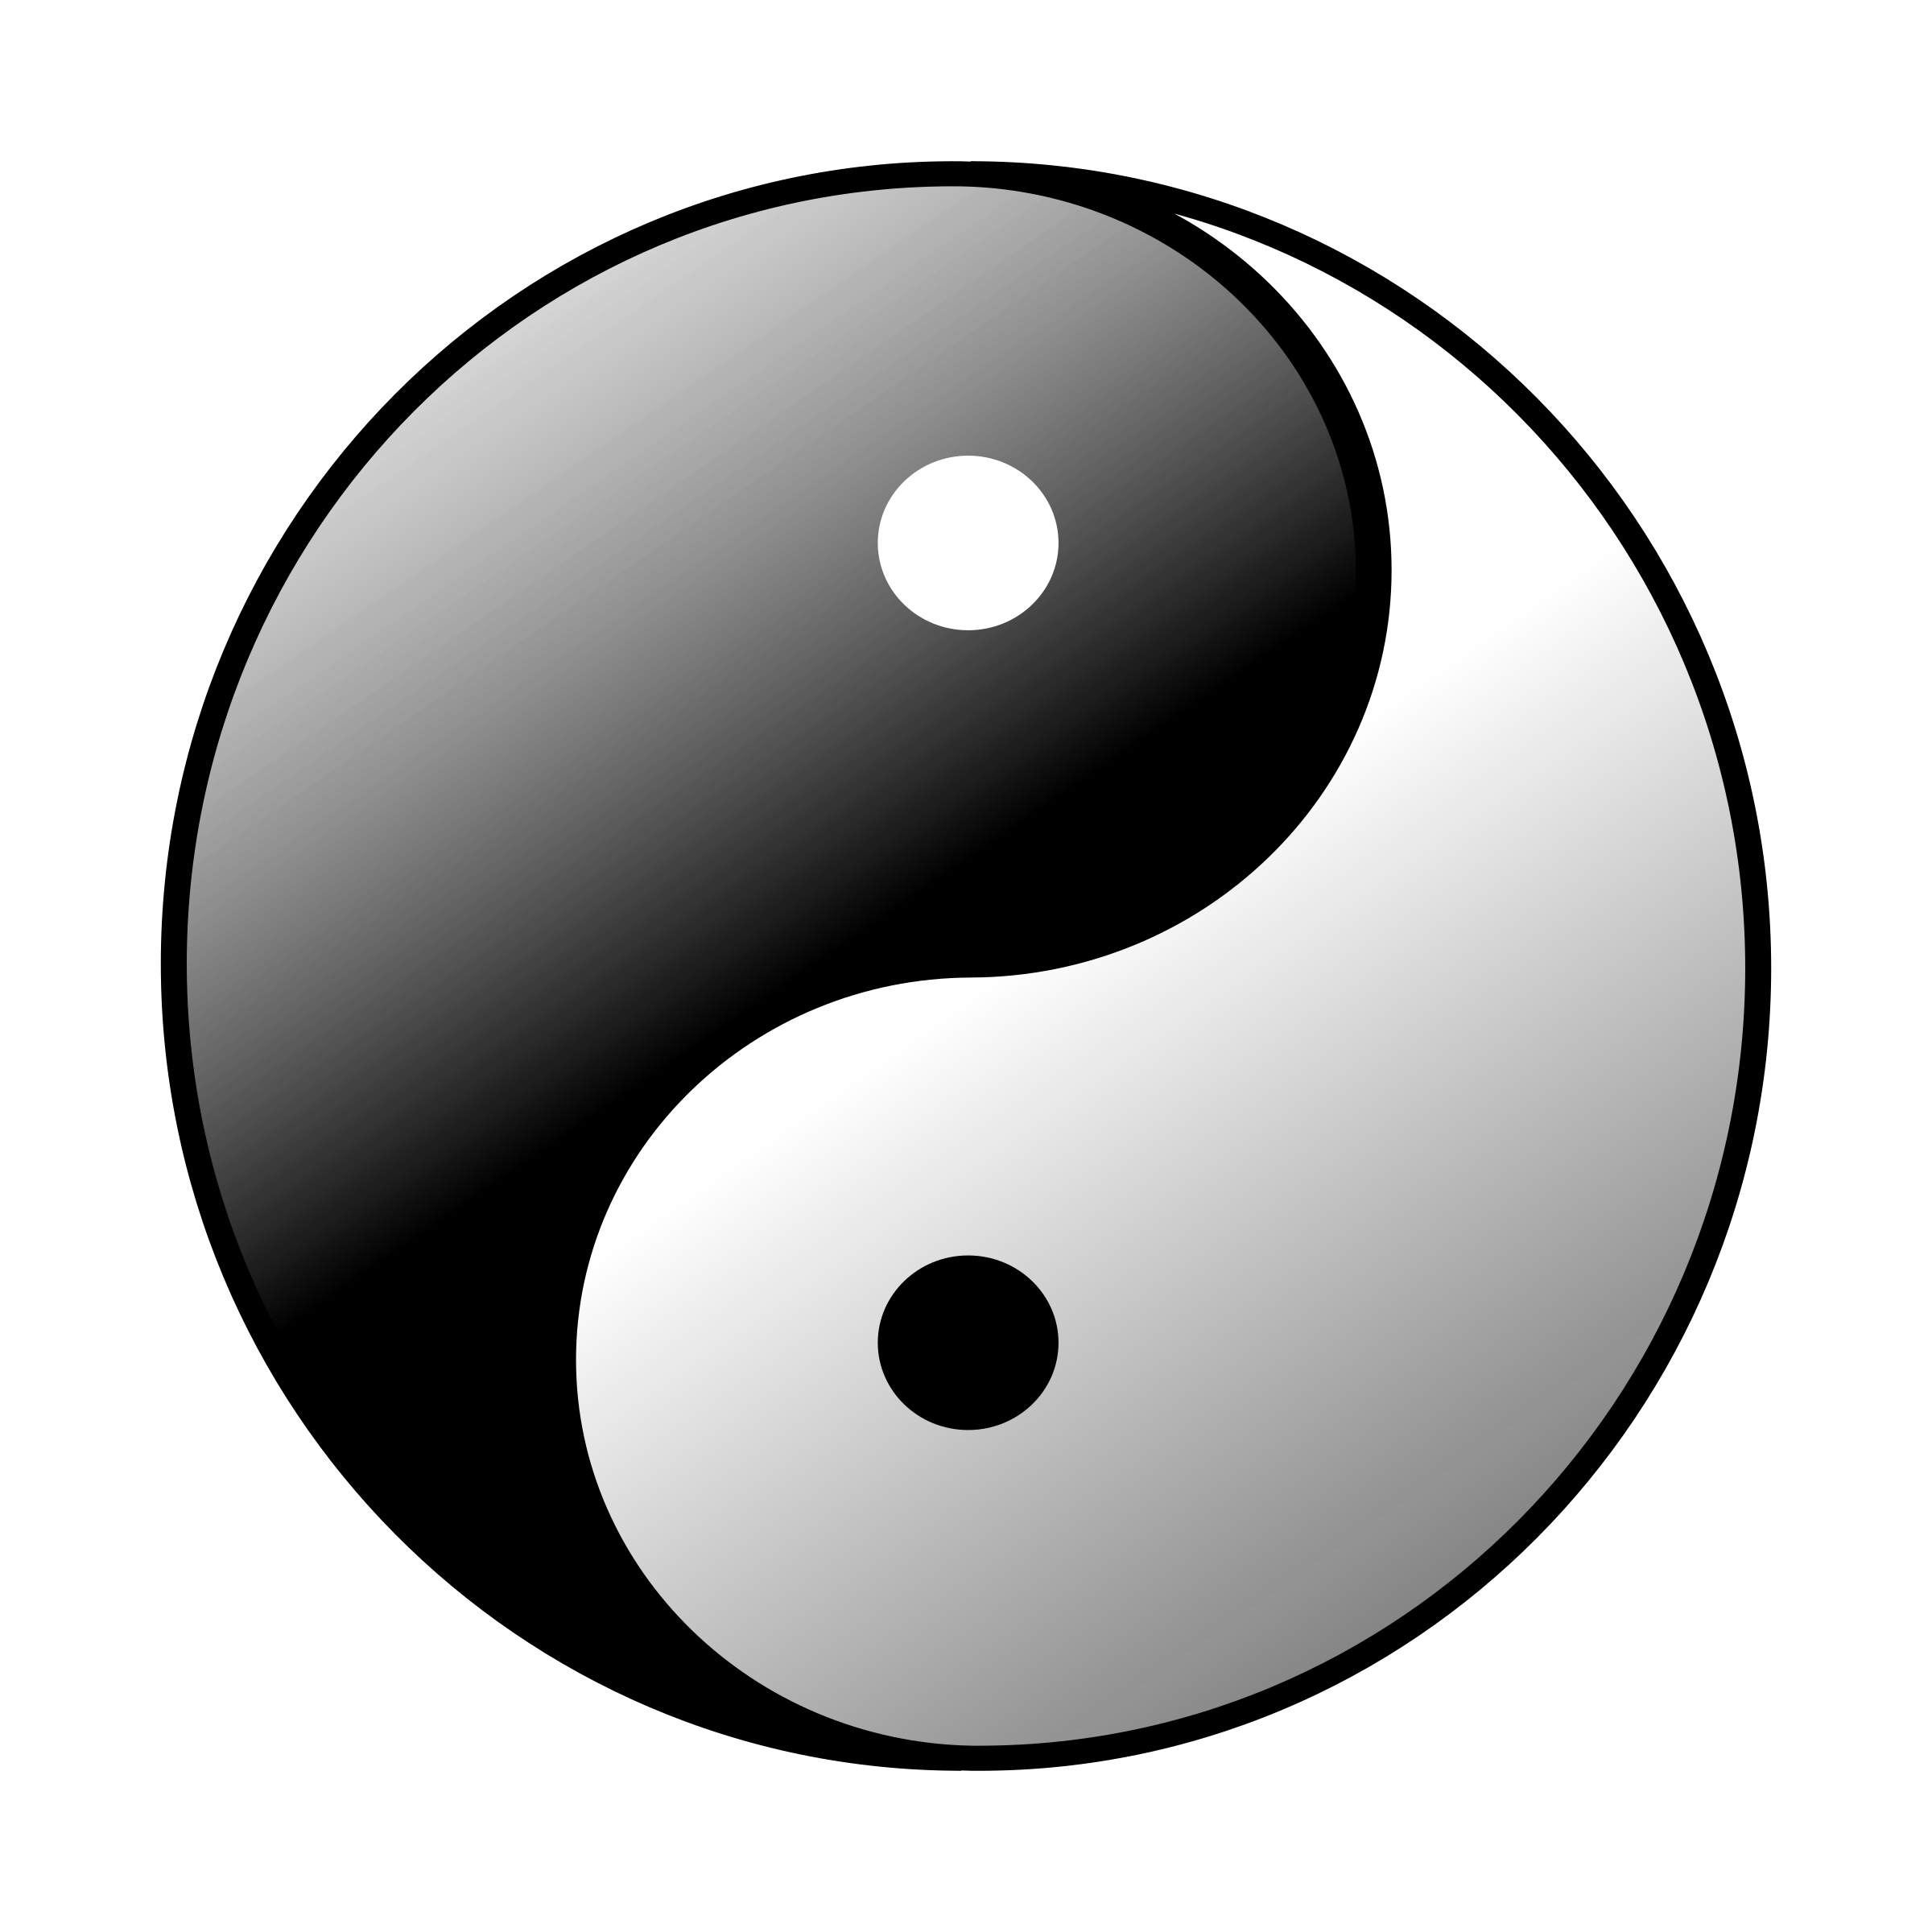 yin yang vector graphic image free stock photo public domain rh goodfreephotos com Yin Yang Symbol Meaning Yin Yang Symbol